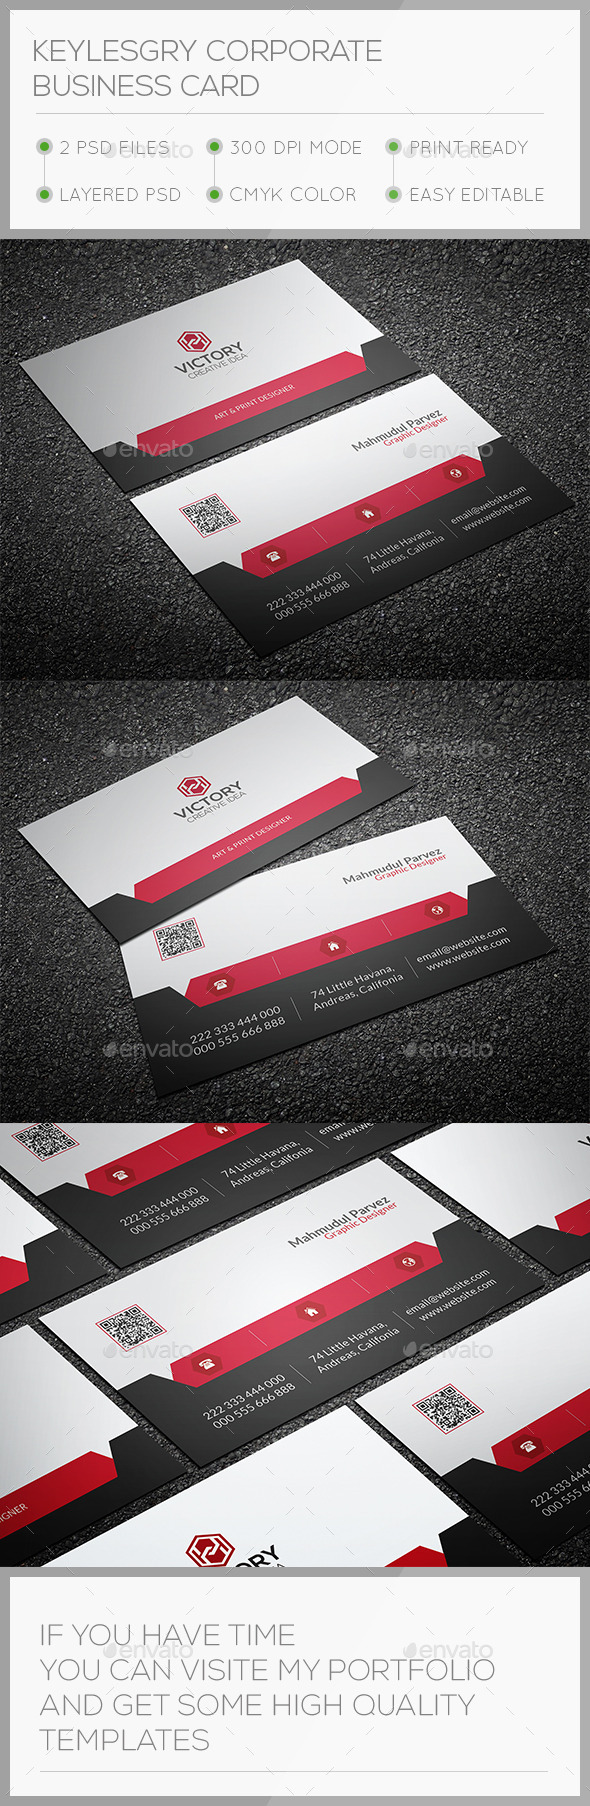 Keylesgry Corporate Business Card - Corporate Business Cards